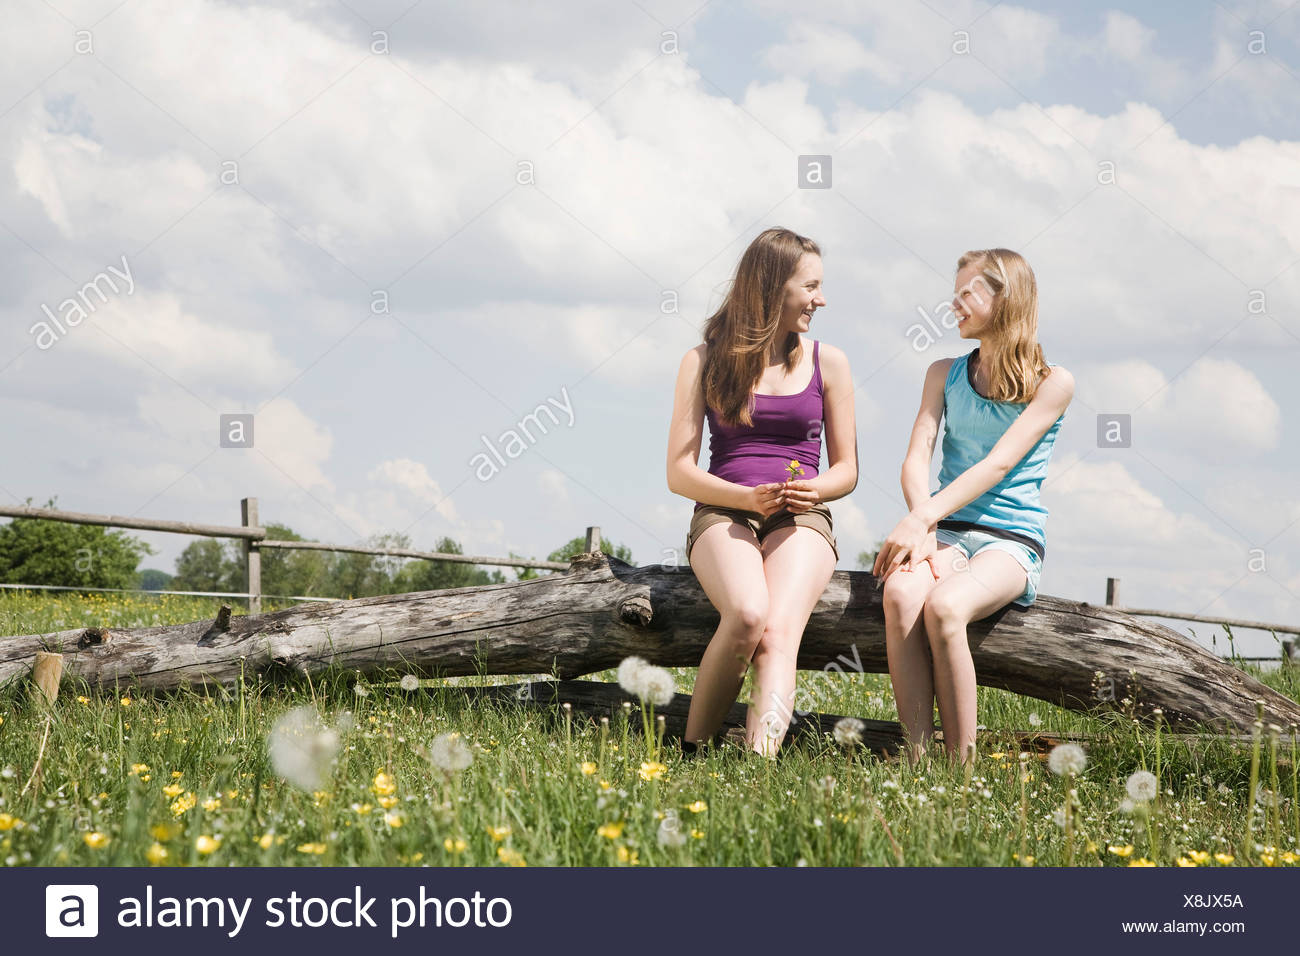 two girls sitting together on tree trunk at horse ranch - Stock Image